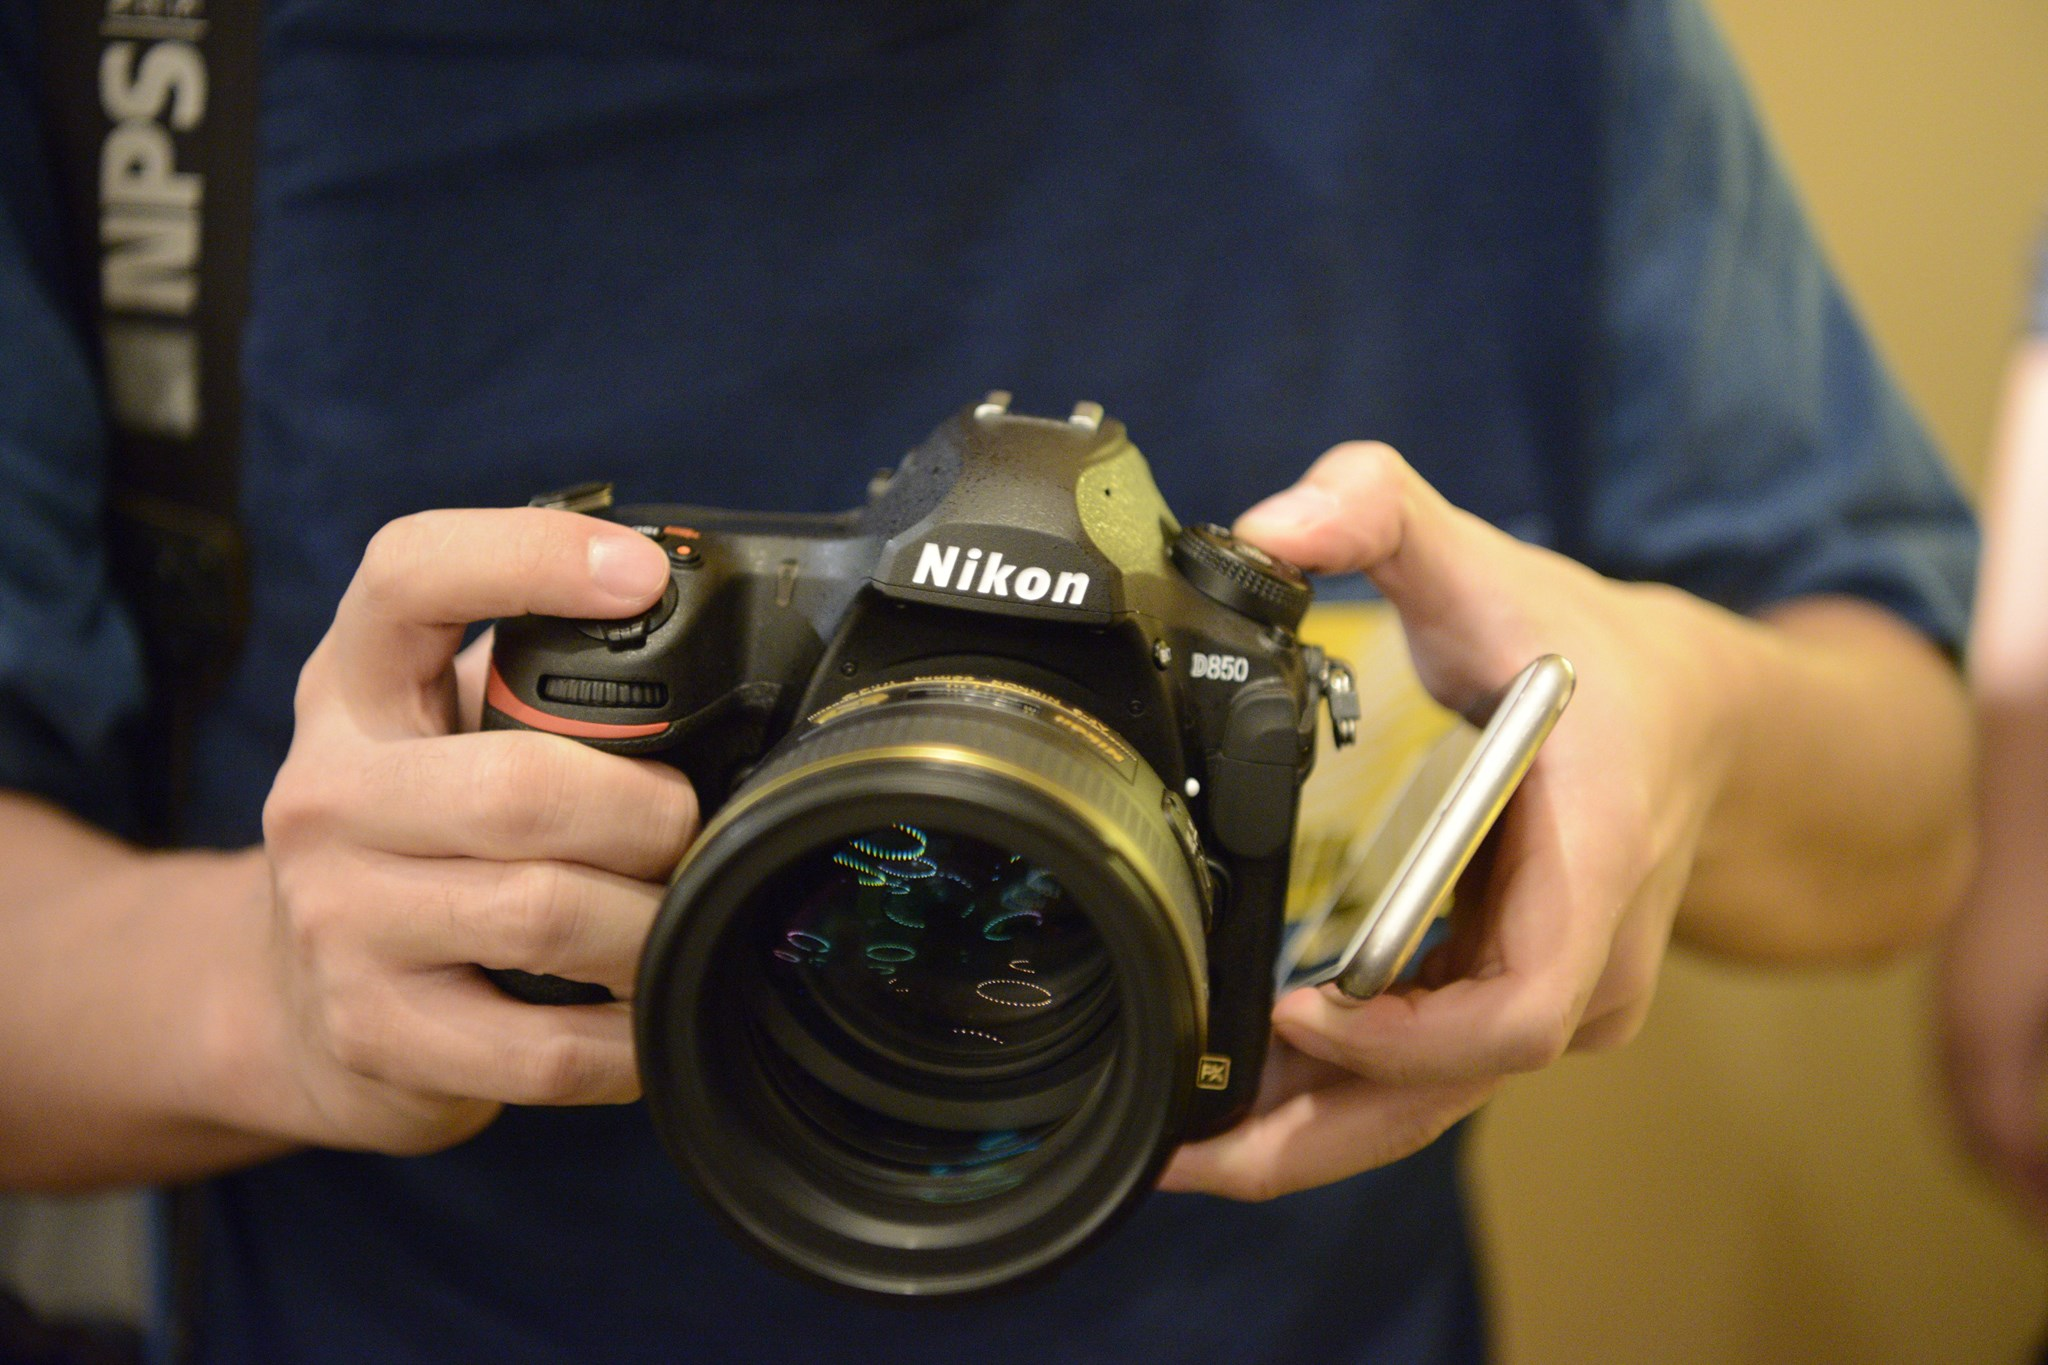 how to change nef picture from nikon camera